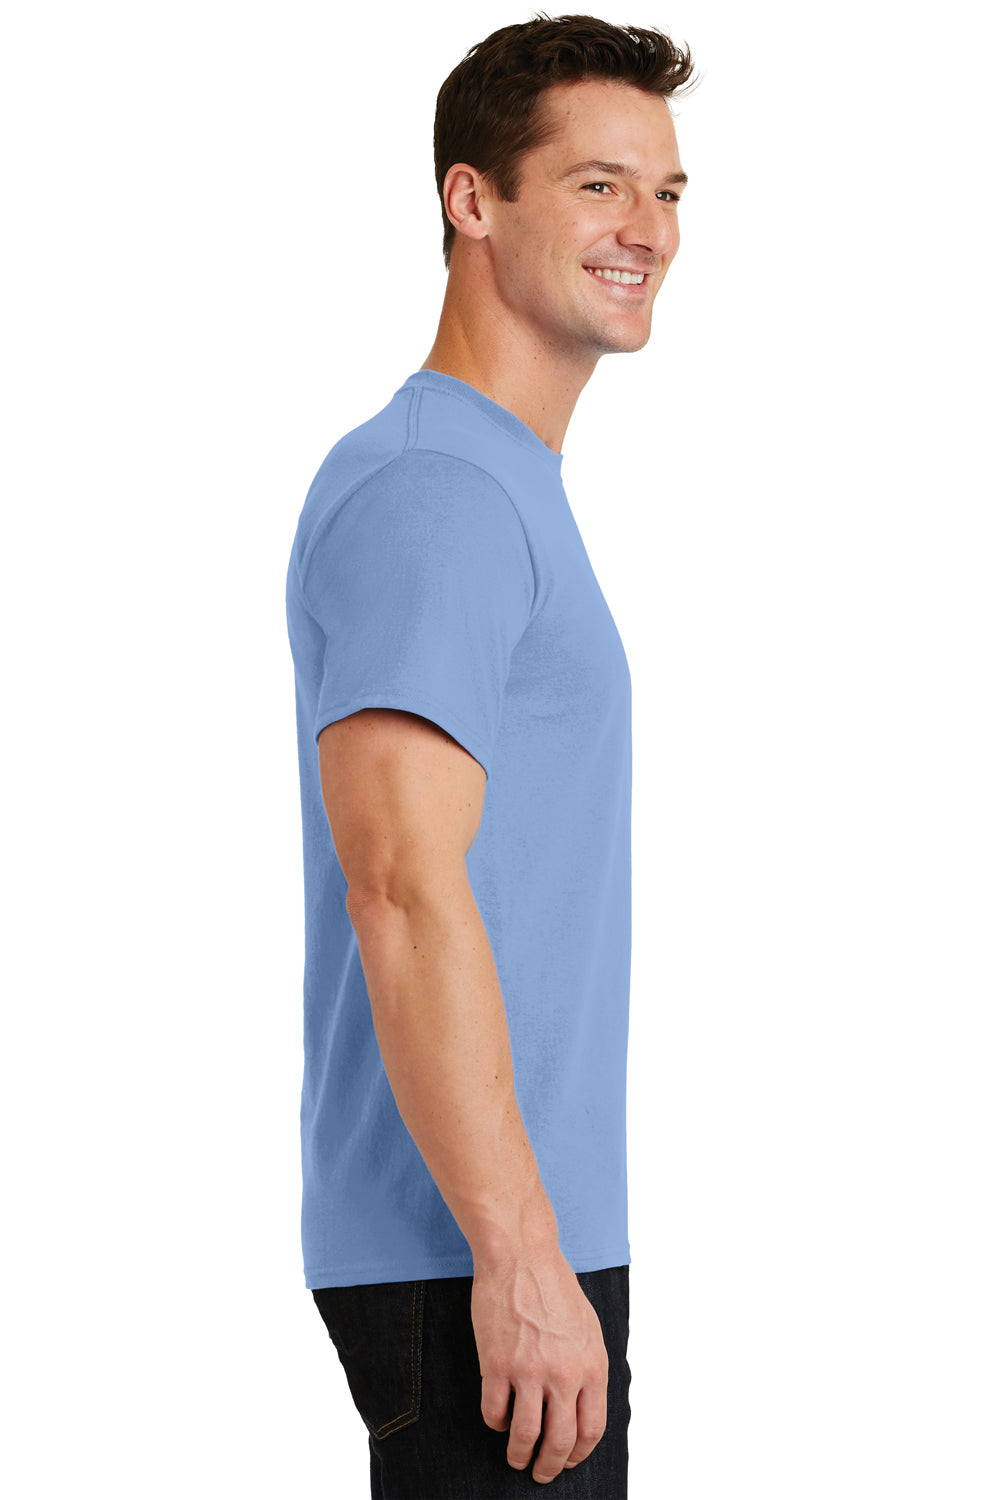 Port & Company PC61 Mens Essential Short Sleeve Crewneck T-Shirt Light Blue Side